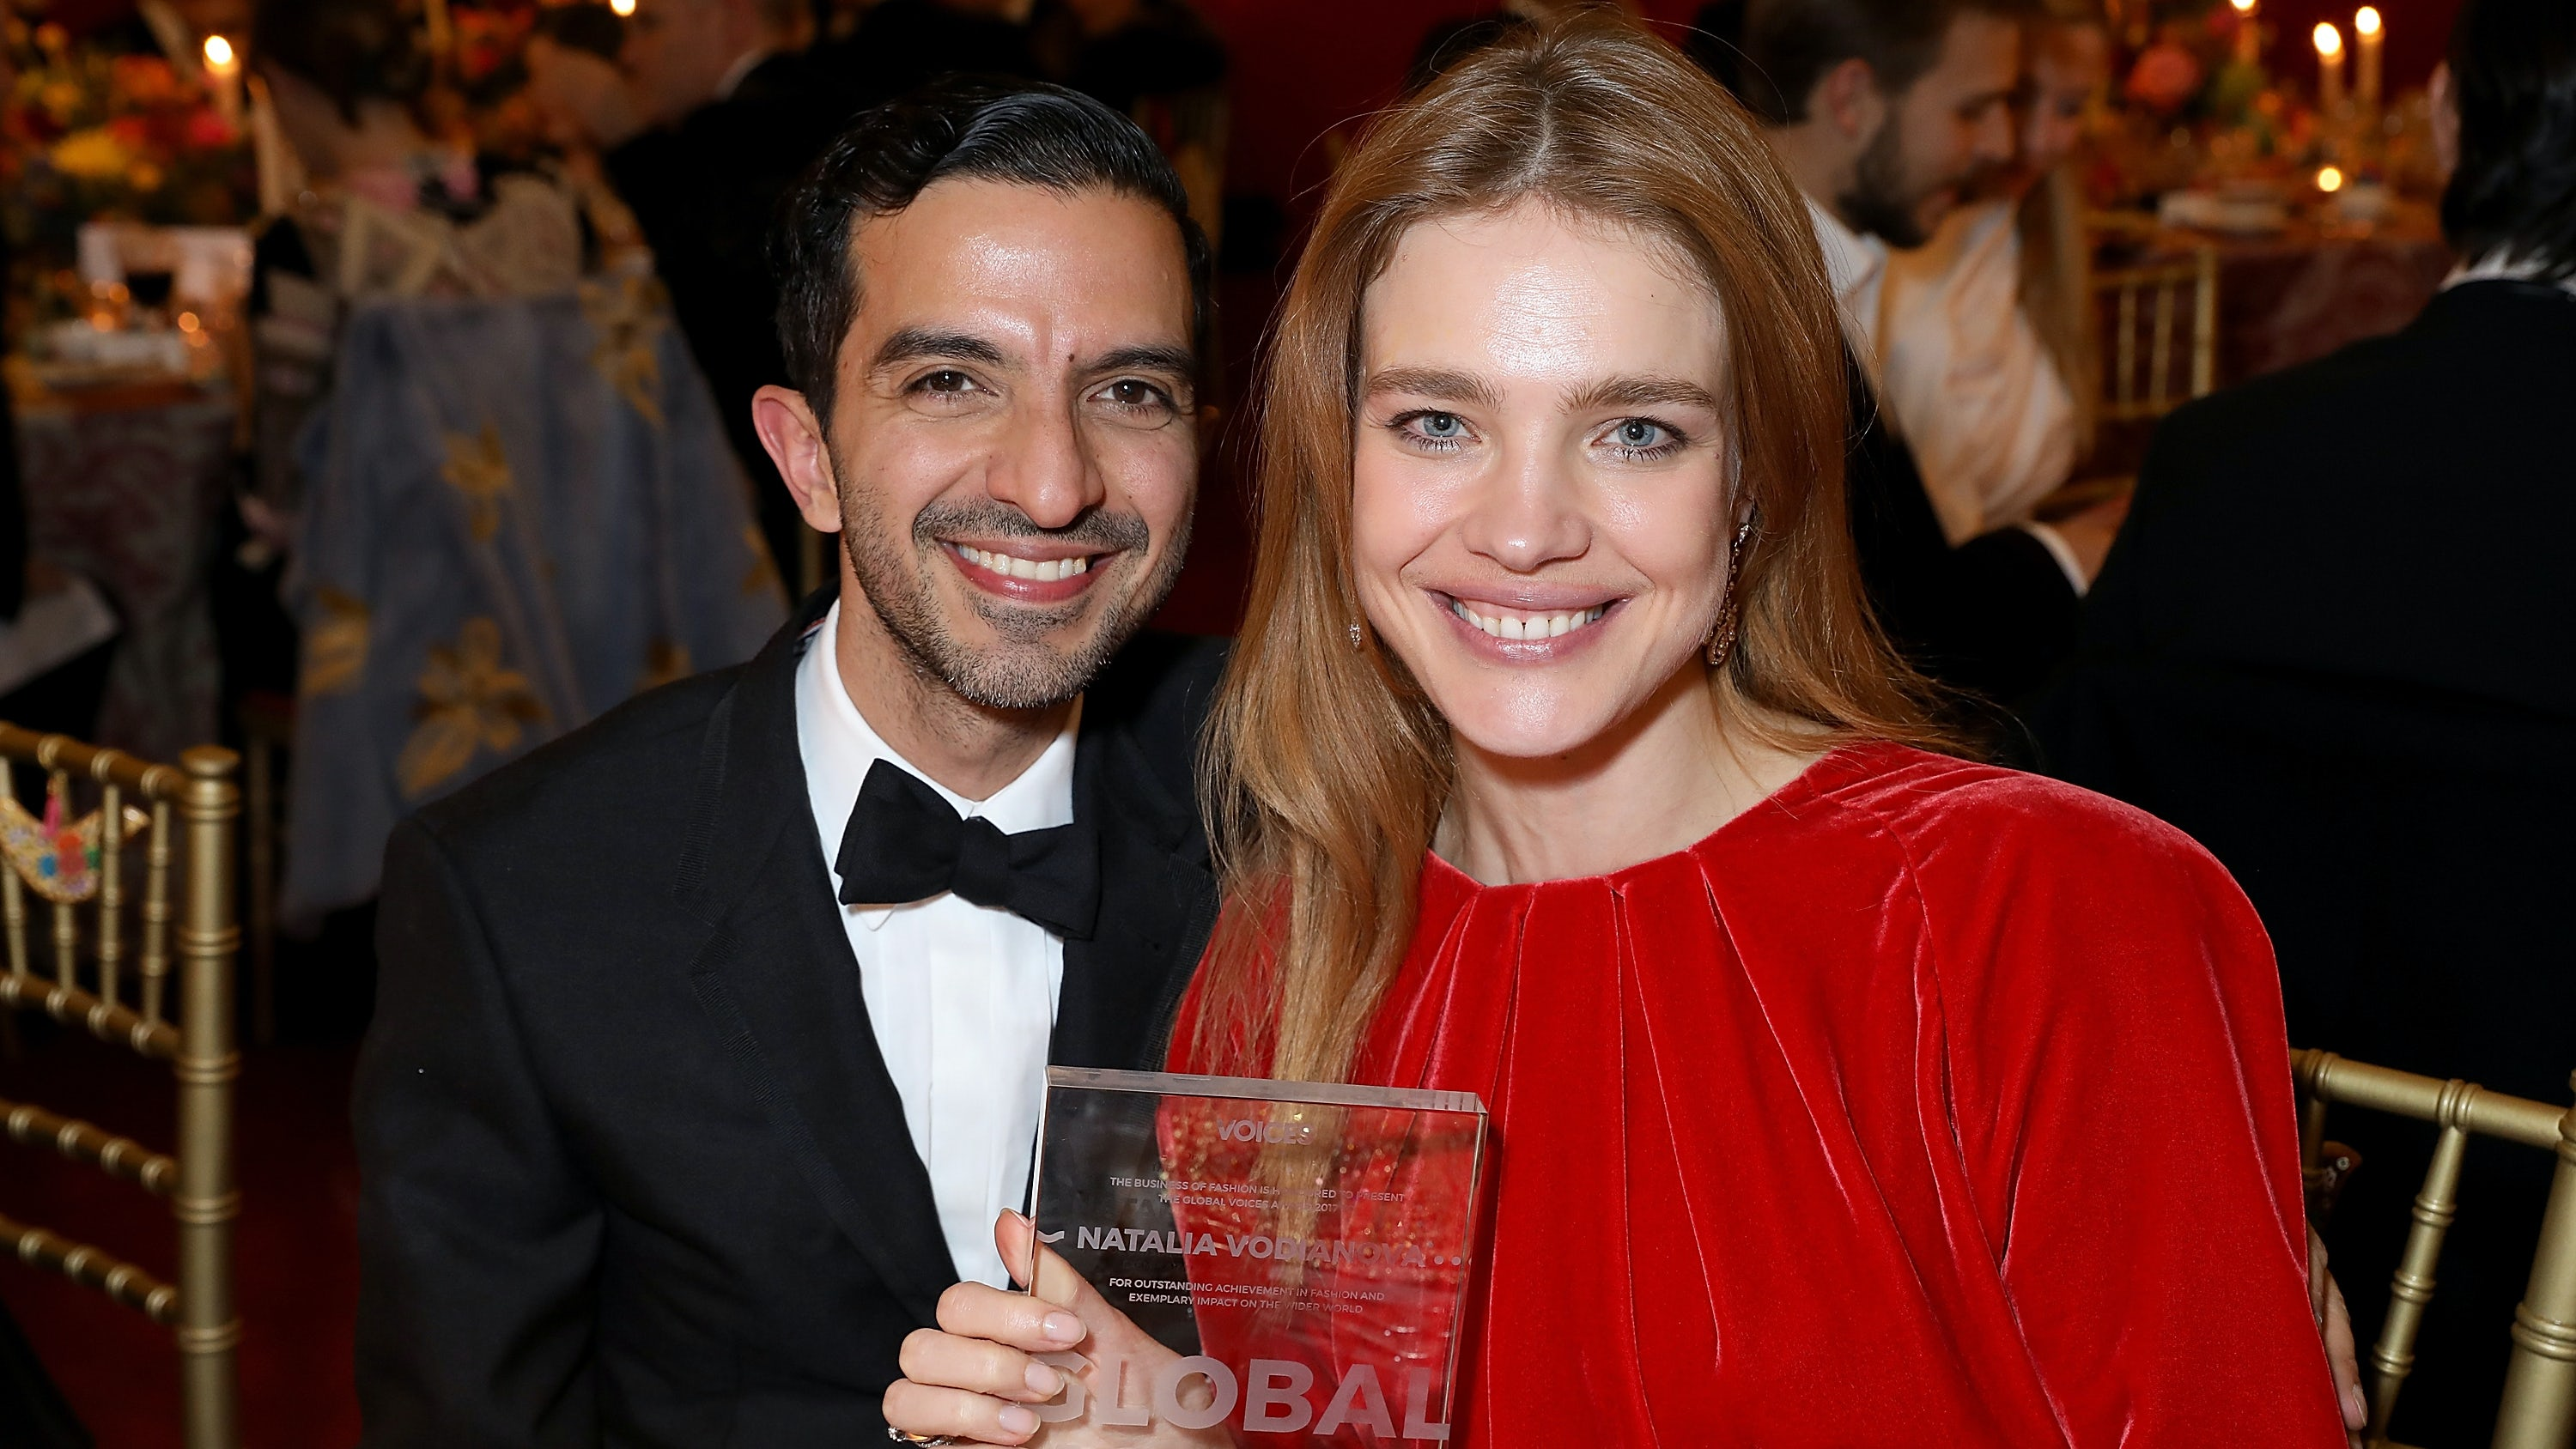 Imran Amed and Natalia Vodianova at the gala dinner during #BoFVOICES   Source: Darren Gerrish/Getty Images